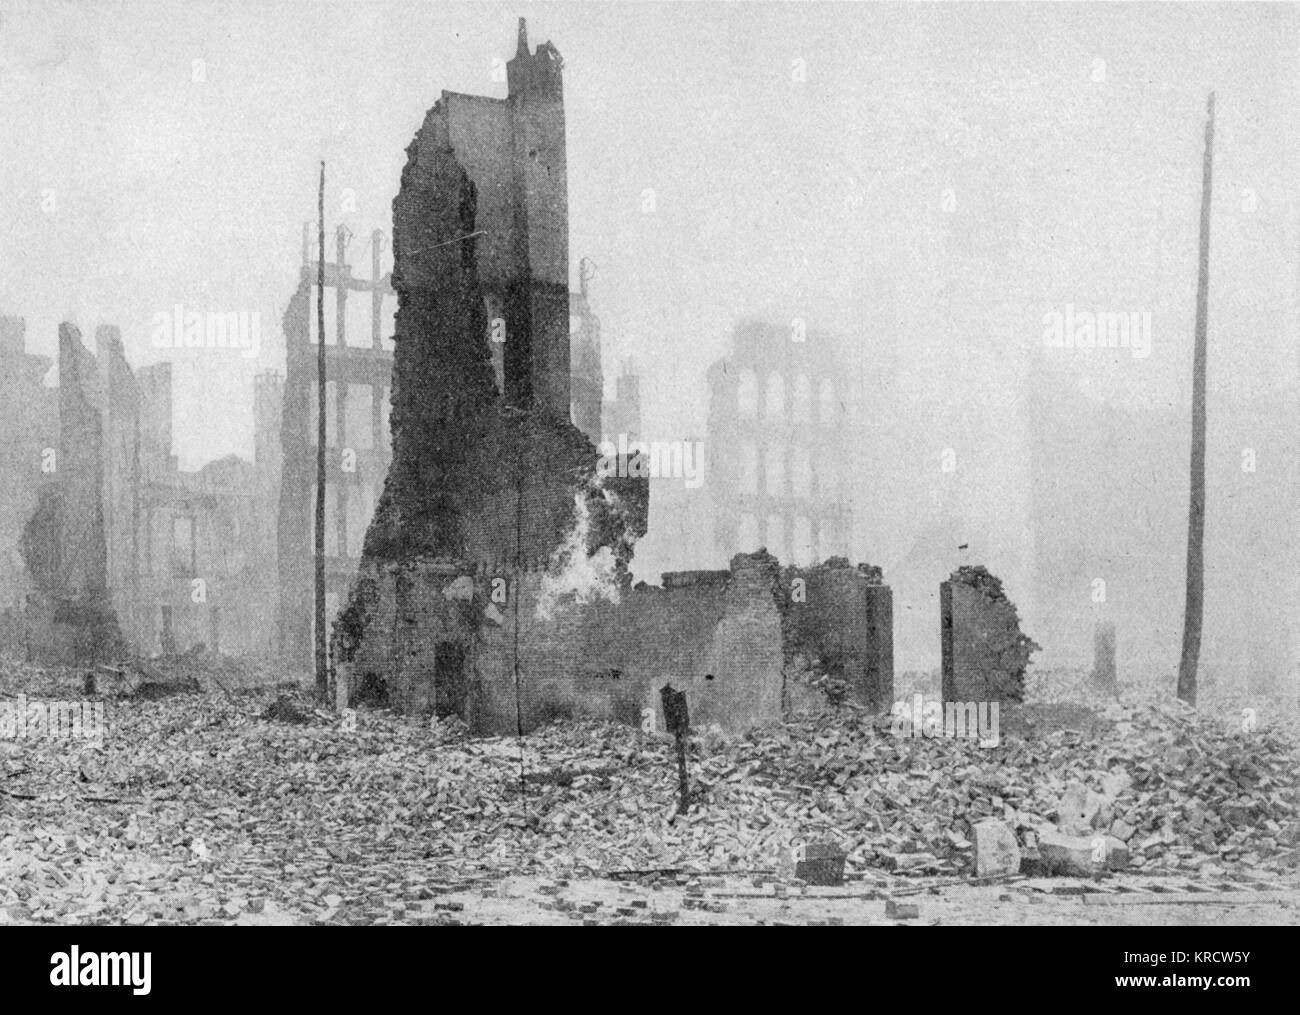 The heart of the factory district, devastated by the earthquake and the flames. Date: April 18th, 1906 - Stock Image